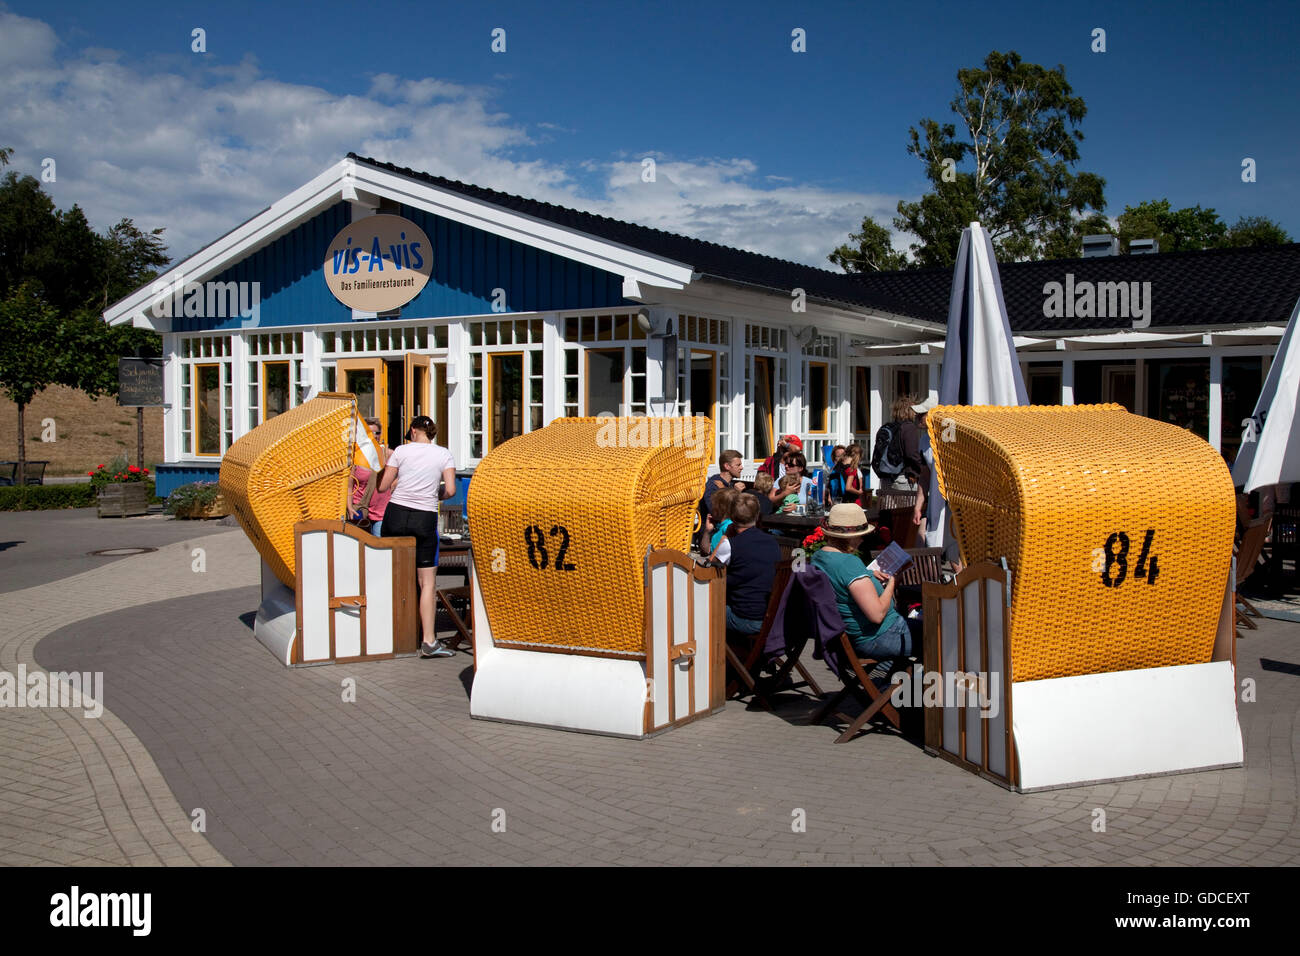 Vis-A-vis family restaurant, Baltic Sea spa of Zingst, Fischland Darss Zingst peninsula, Mecklenburg-Western Pomerania - Stock Image